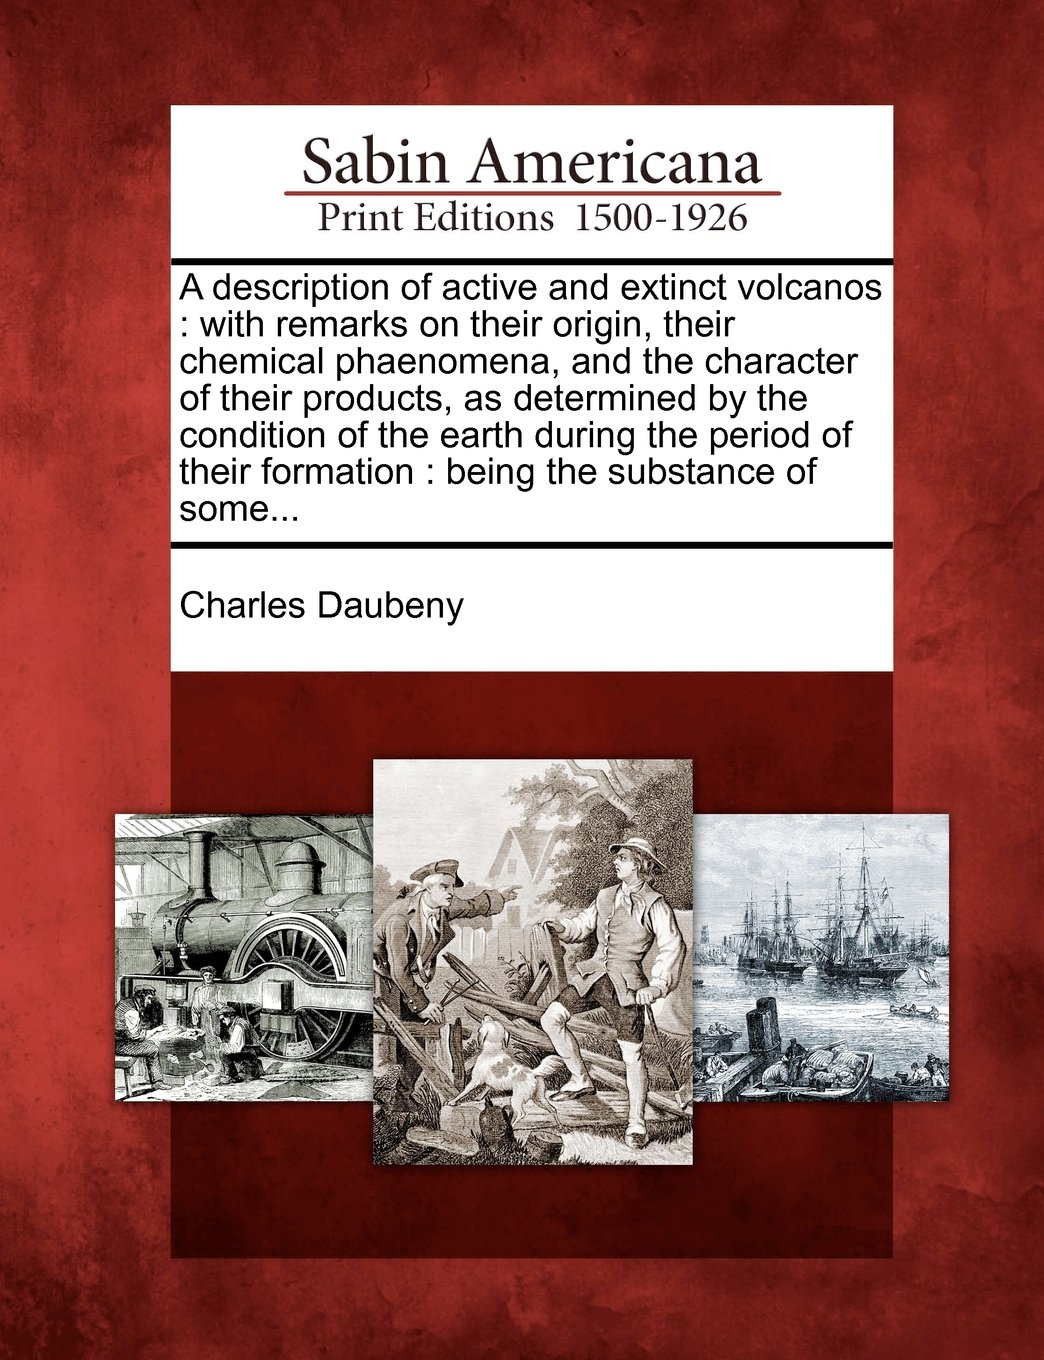 Read Online A description of active and extinct volcanos: with remarks on their origin, their chemical phaenomena, and the character of their products, as ... formation : being the substance of some... PDF